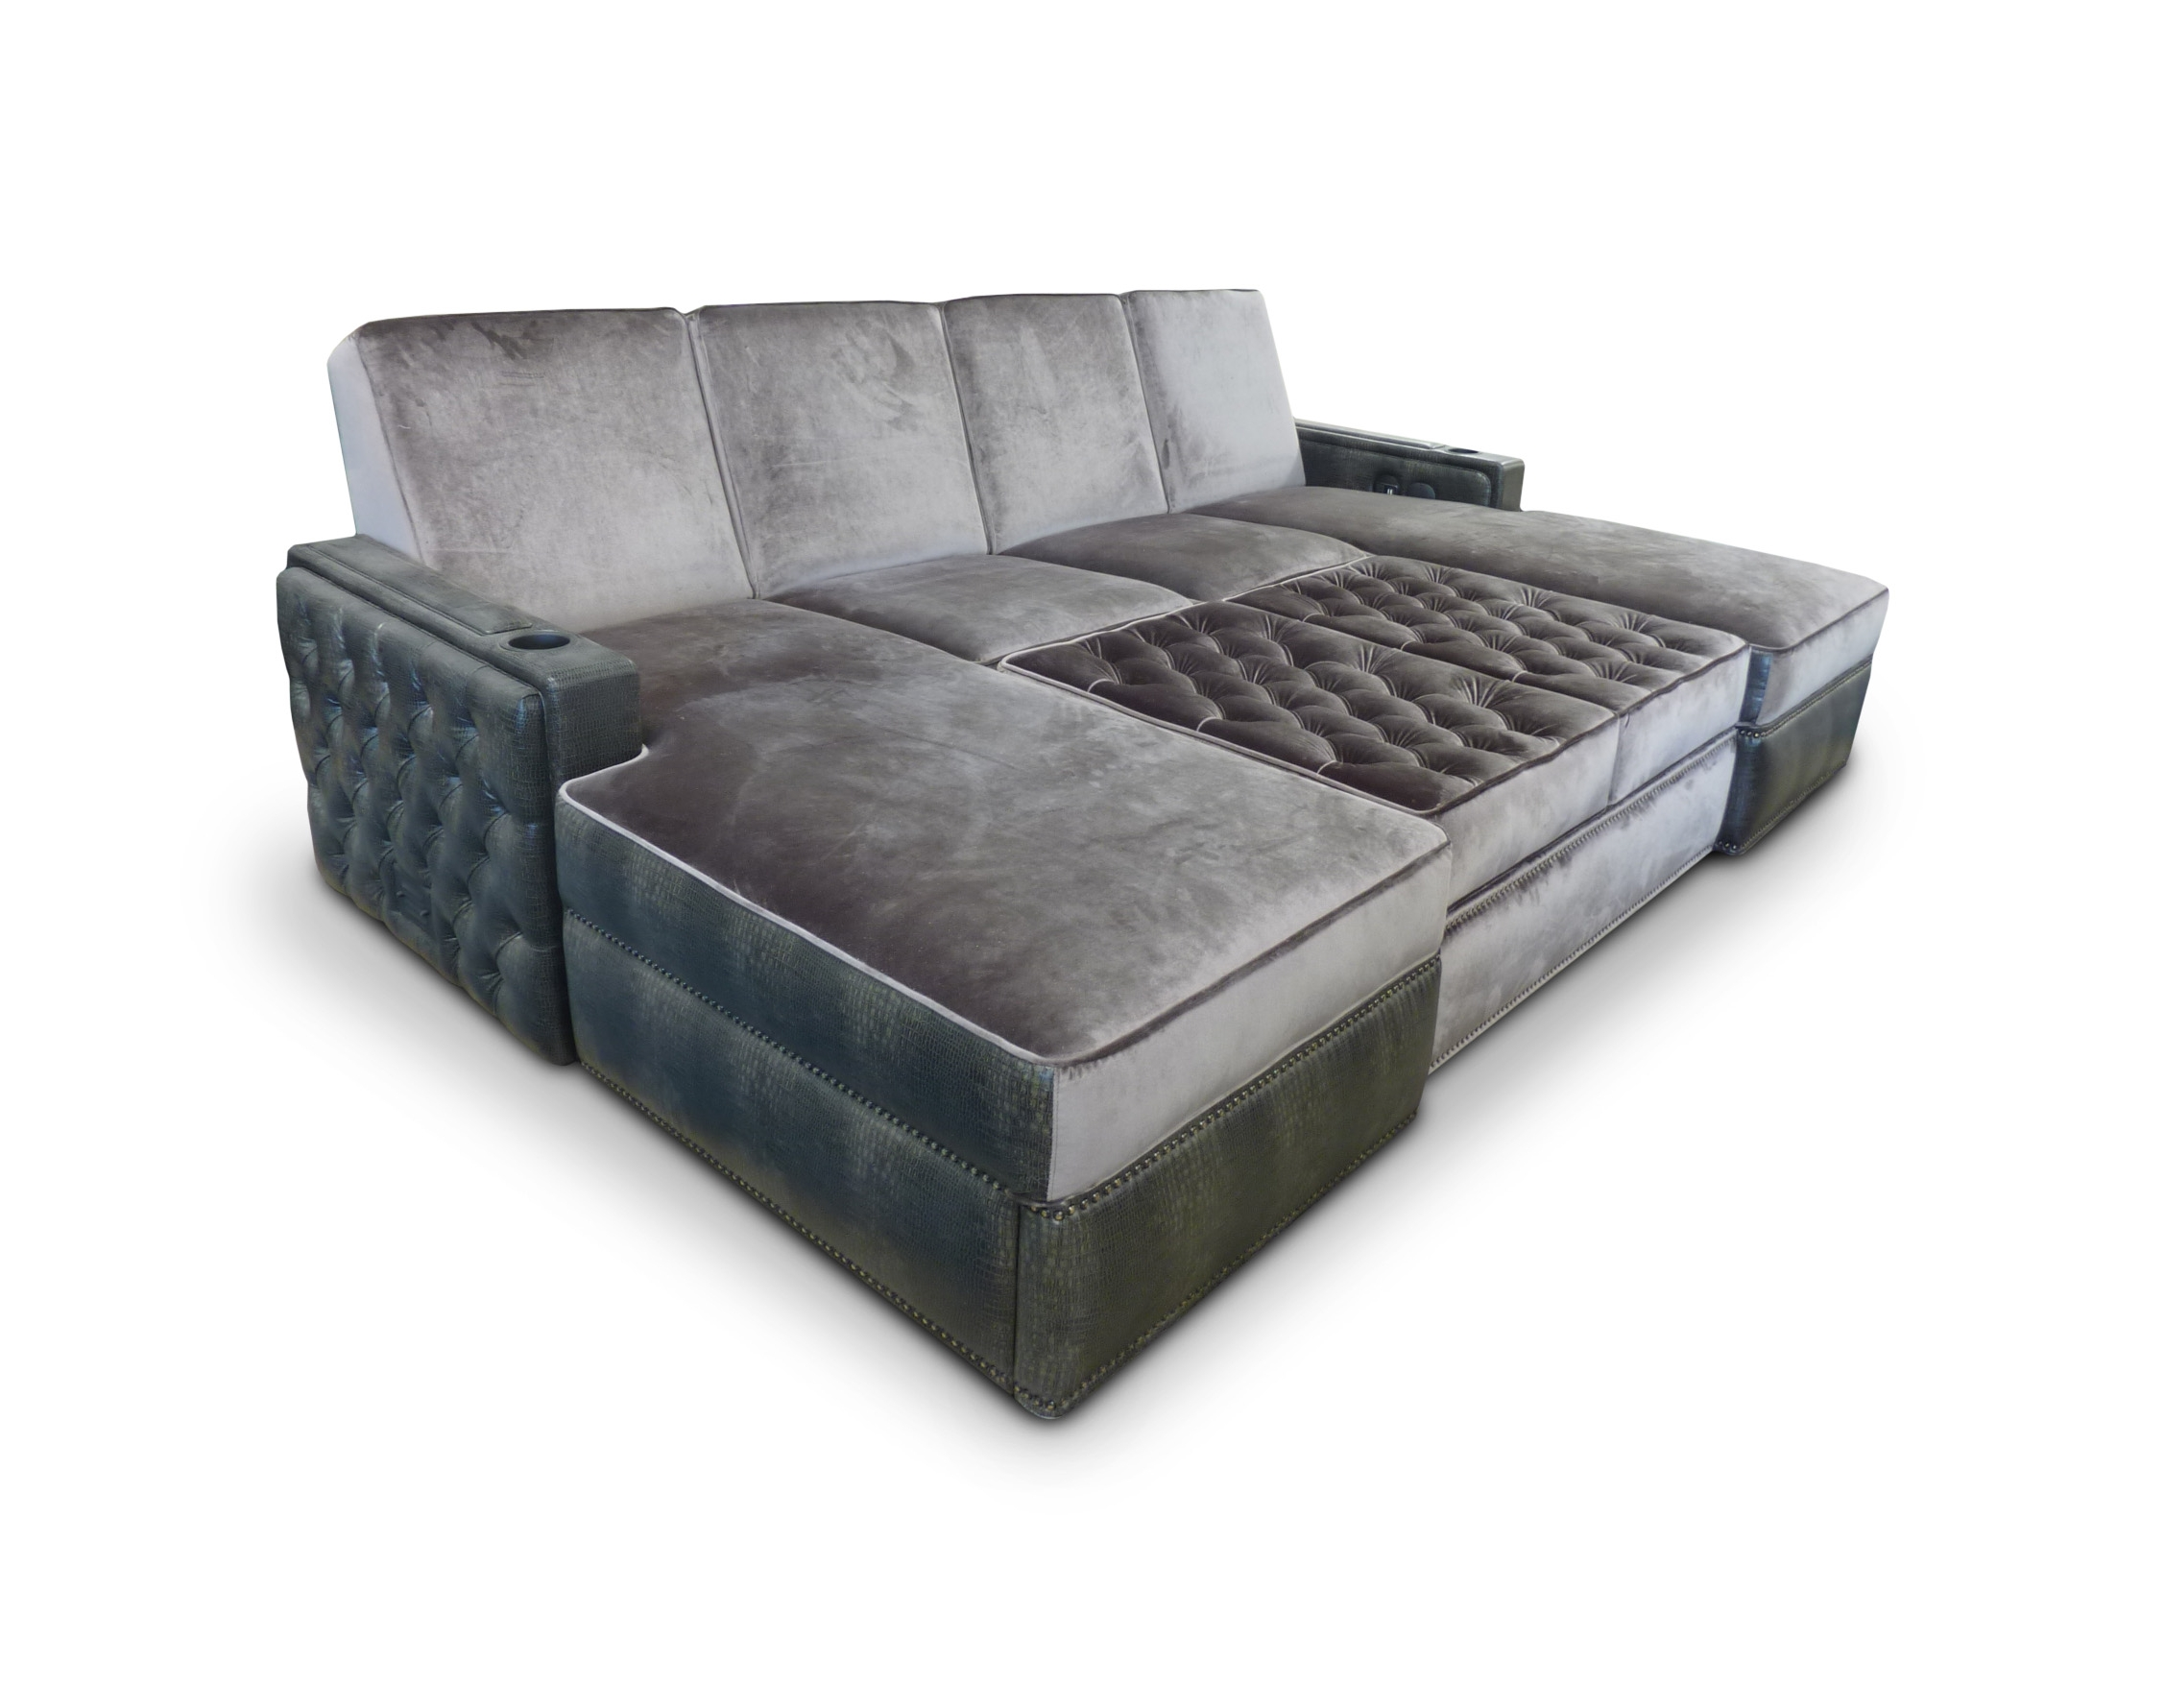 Lounger with tufting on side panels, back & ottoman.  Ottoman on casters